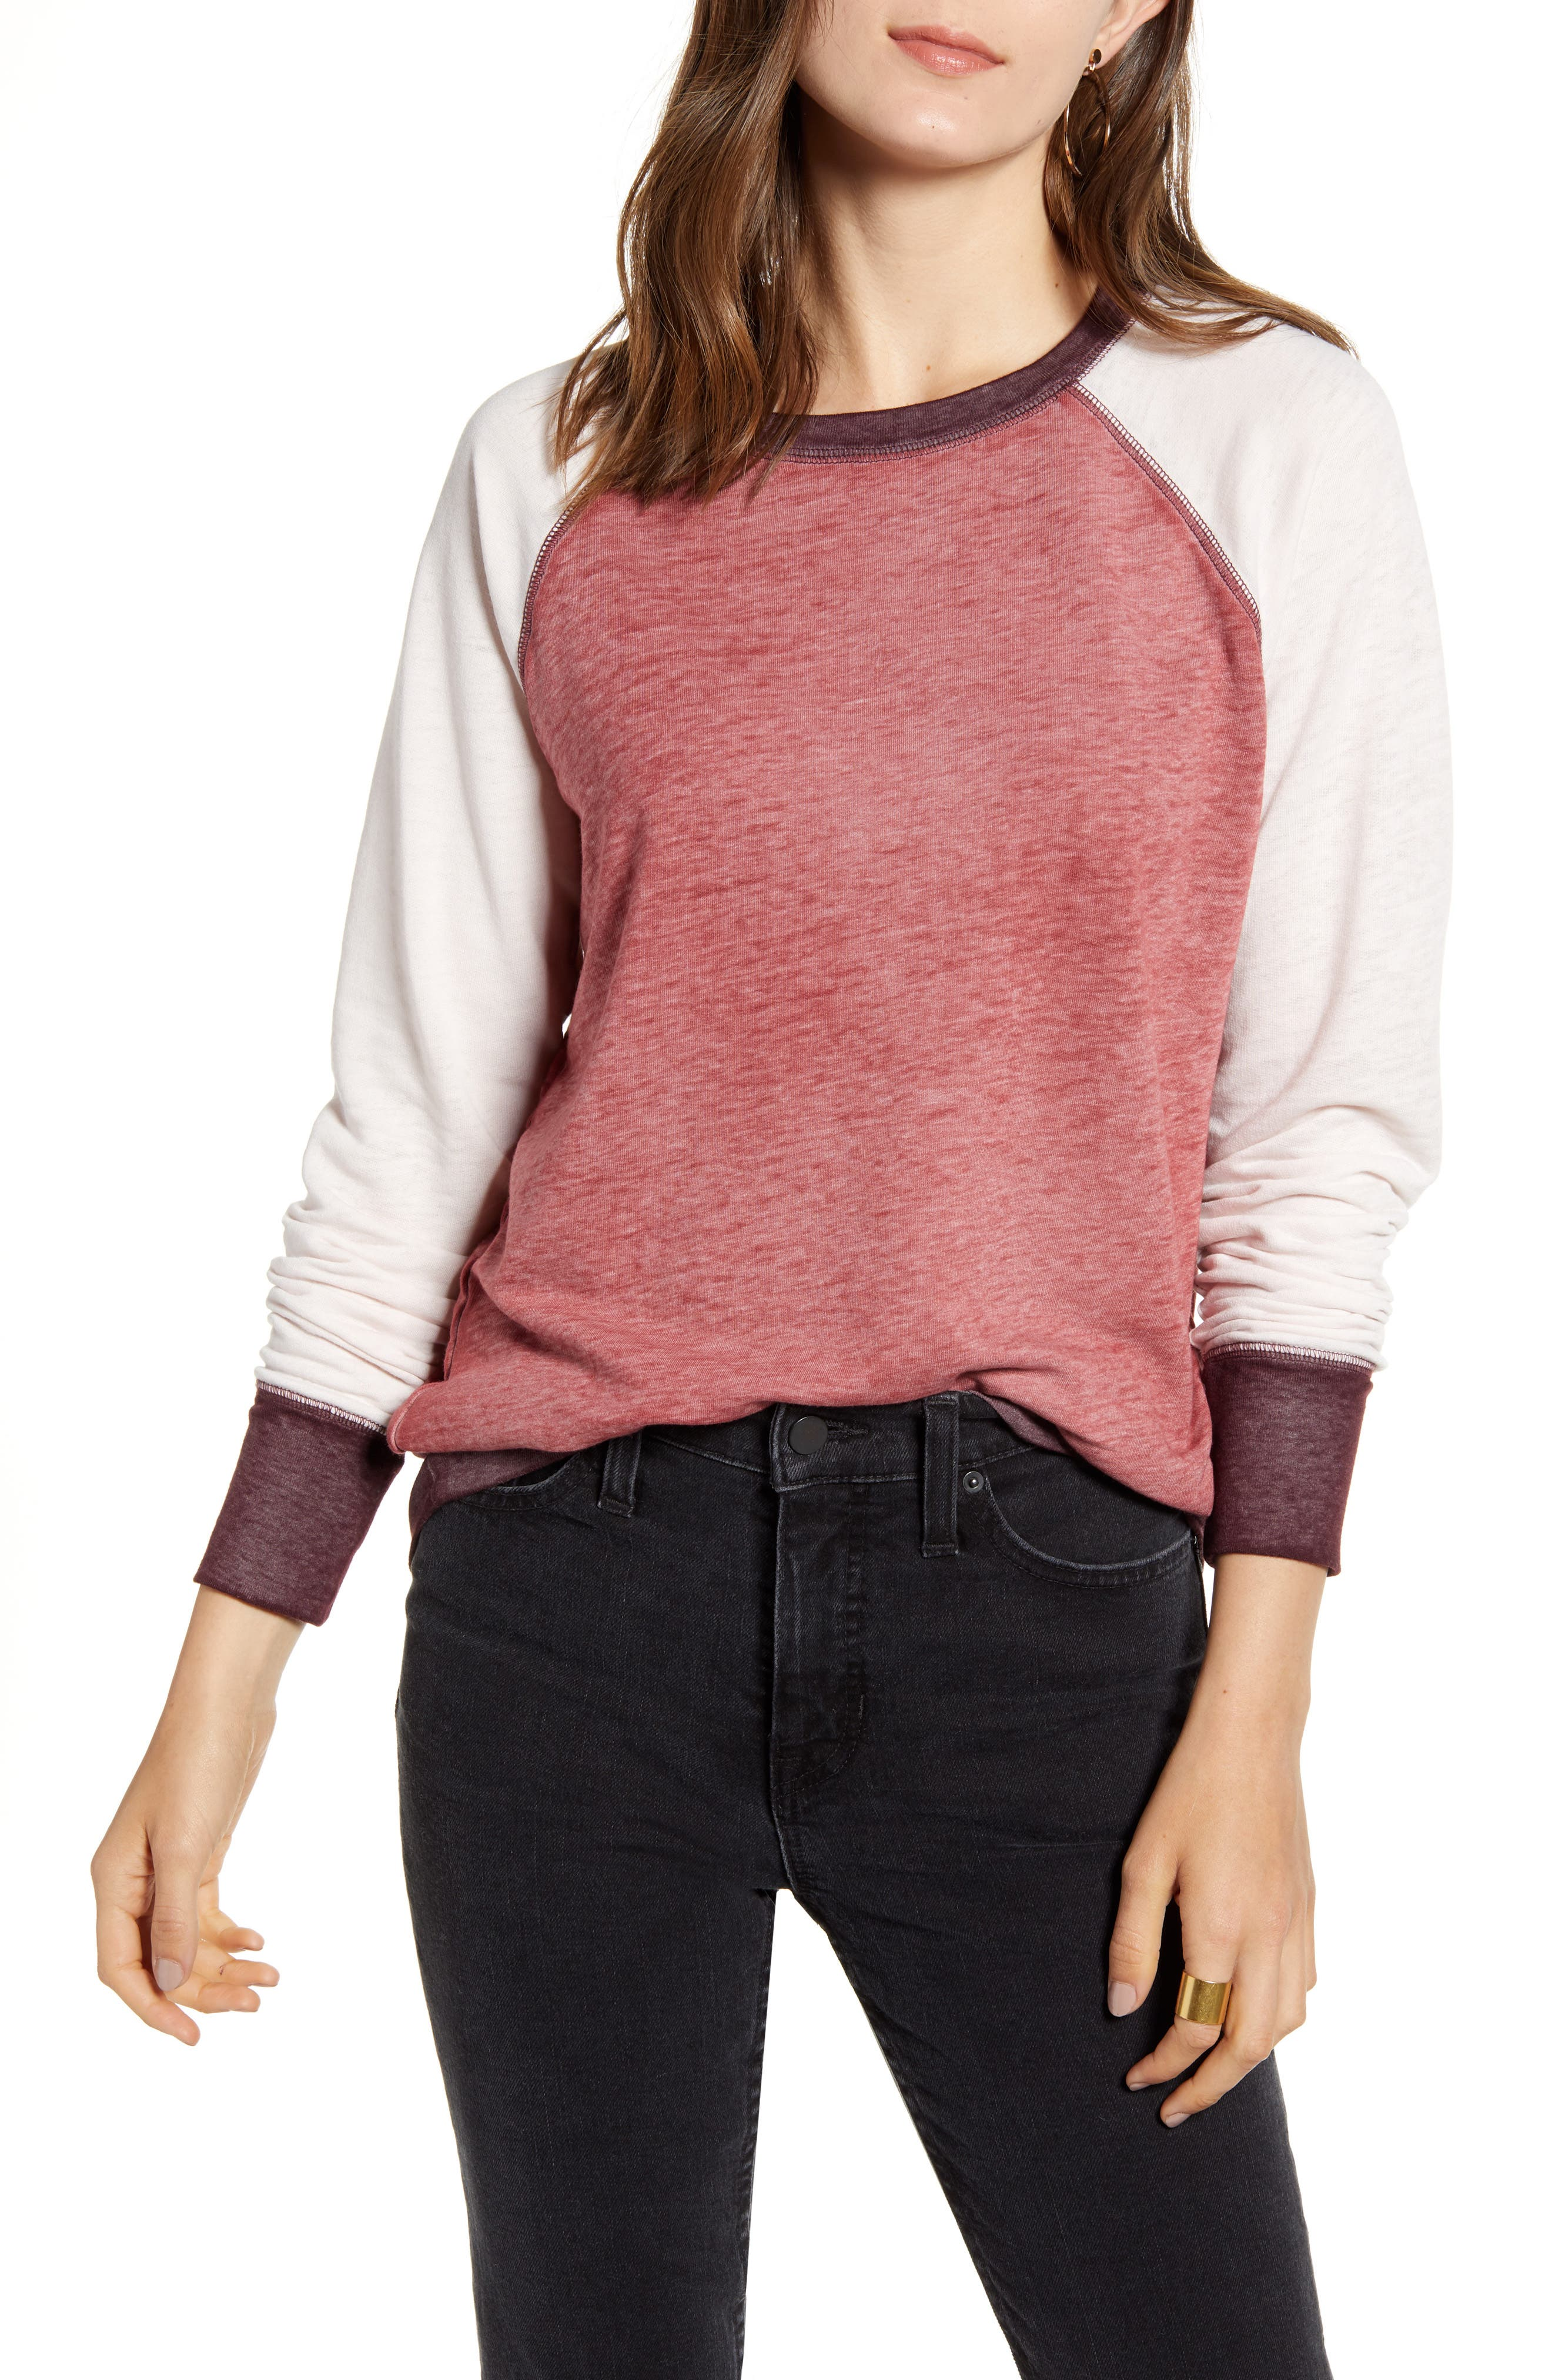 Treasure & Bond Colorblock Crewneck Sweatshirt